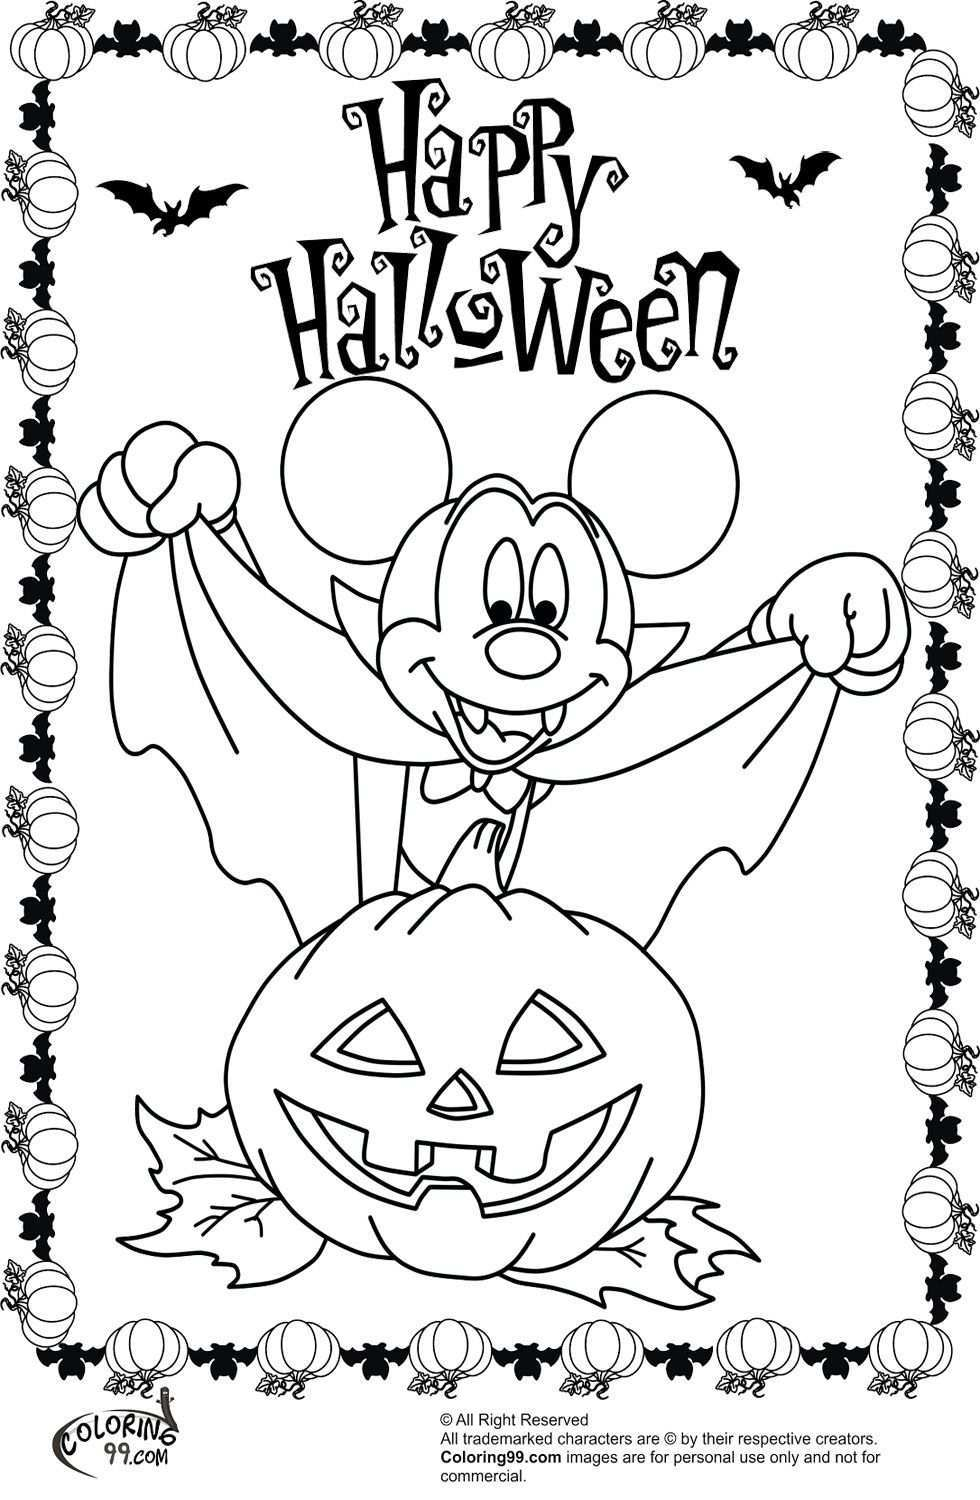 Mickey Mouse Halloween Coloring Sheets Halloween Coloring Halloween Coloring Pages Printable